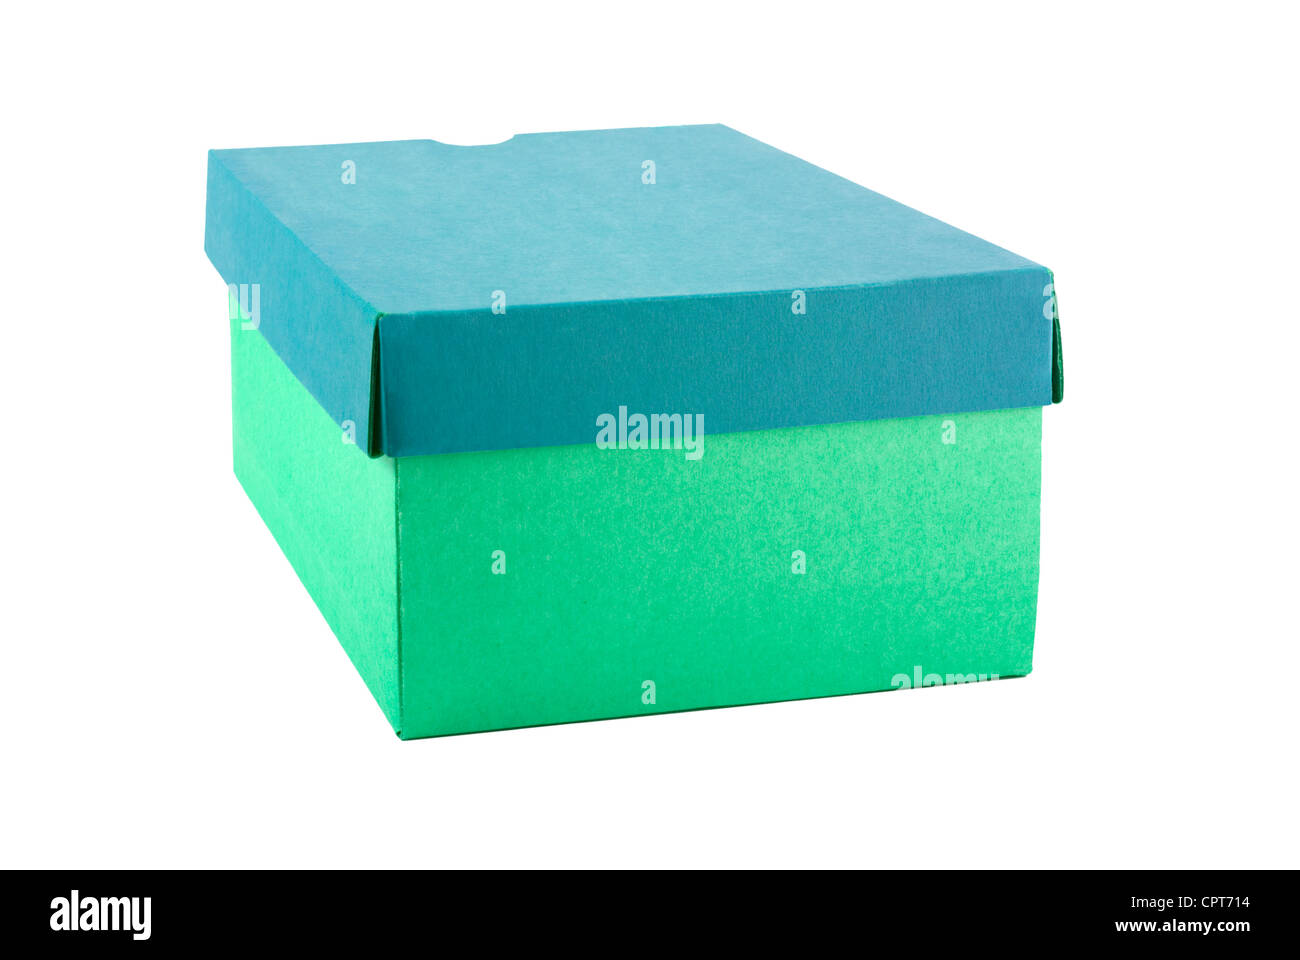 Shoe box made of rough paper and card. Concepts of recycling re-use of objects save the planet frugality shopping  sc 1 st  Alamy & Shoe box made of rough paper and card. Concepts of recycling re ... Aboutintivar.Com